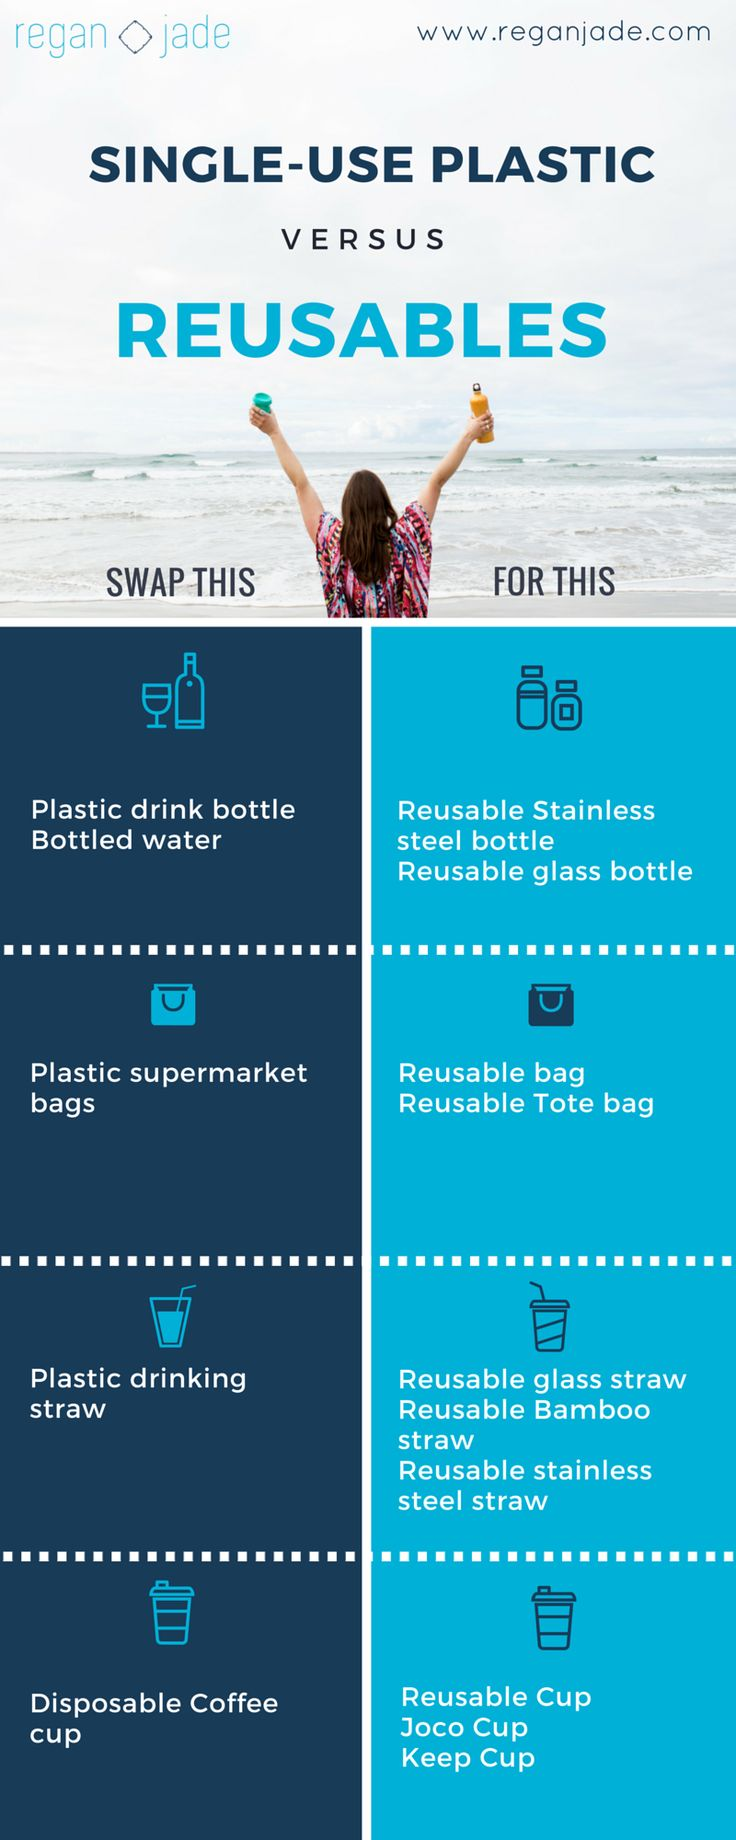 Swap these Single use plastics for reusables! Choose to reuse.